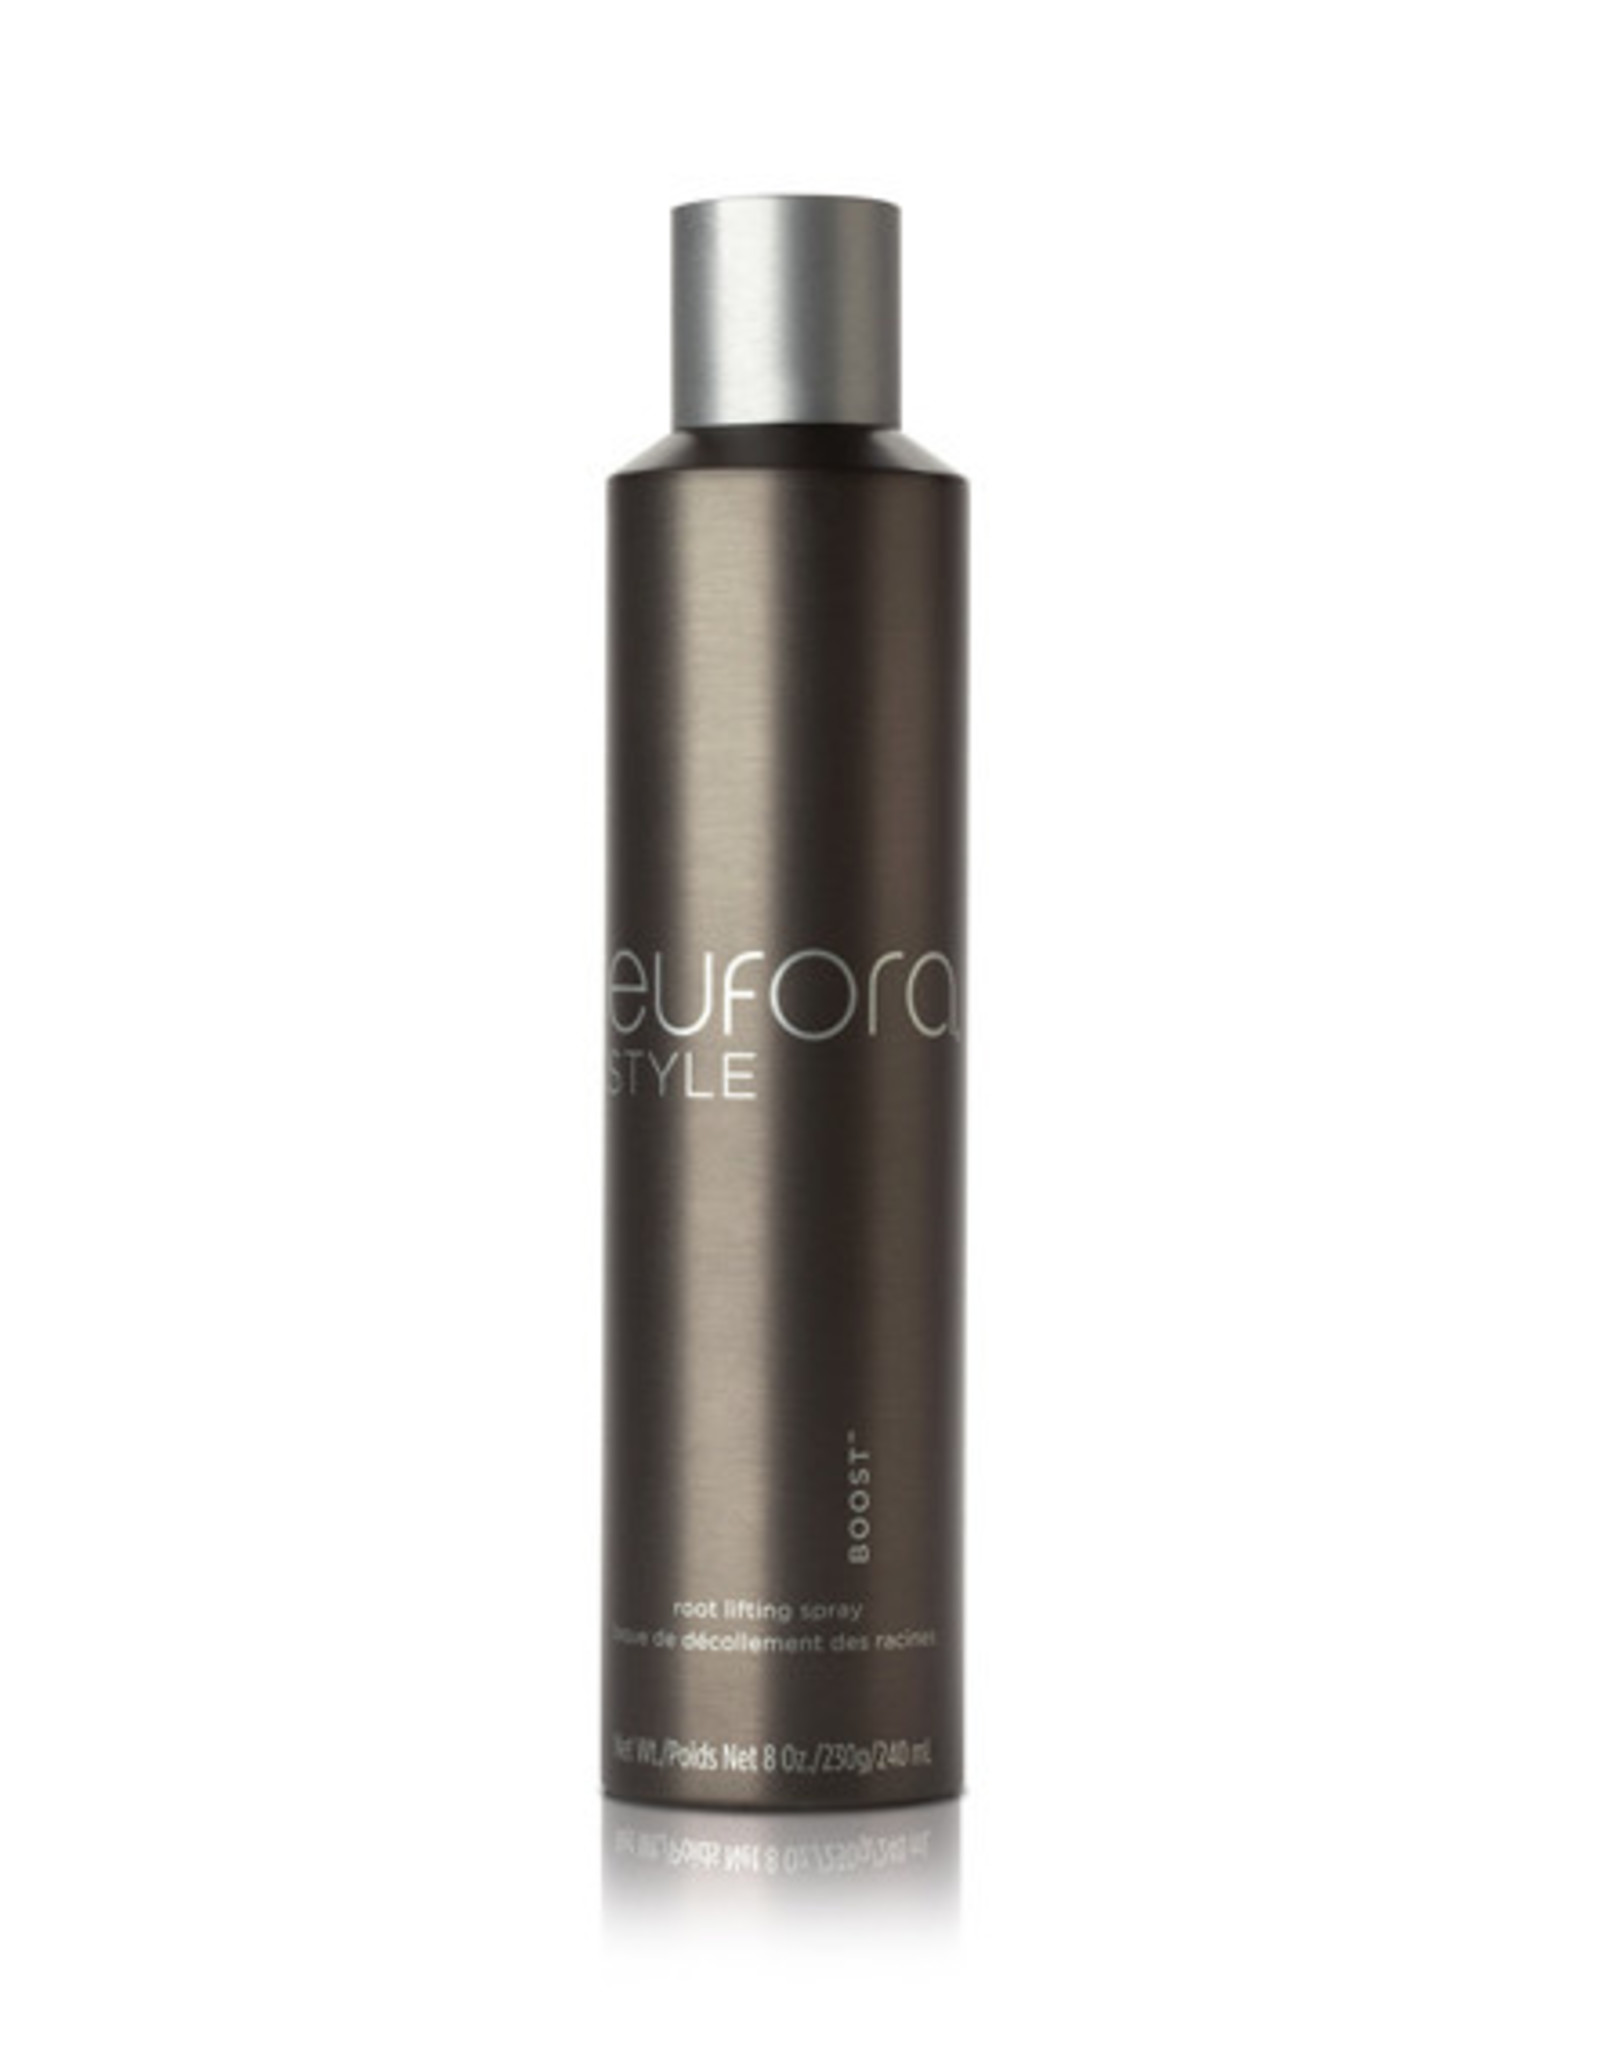 Eufora EuforaStyle Boost Root Lifting Spray